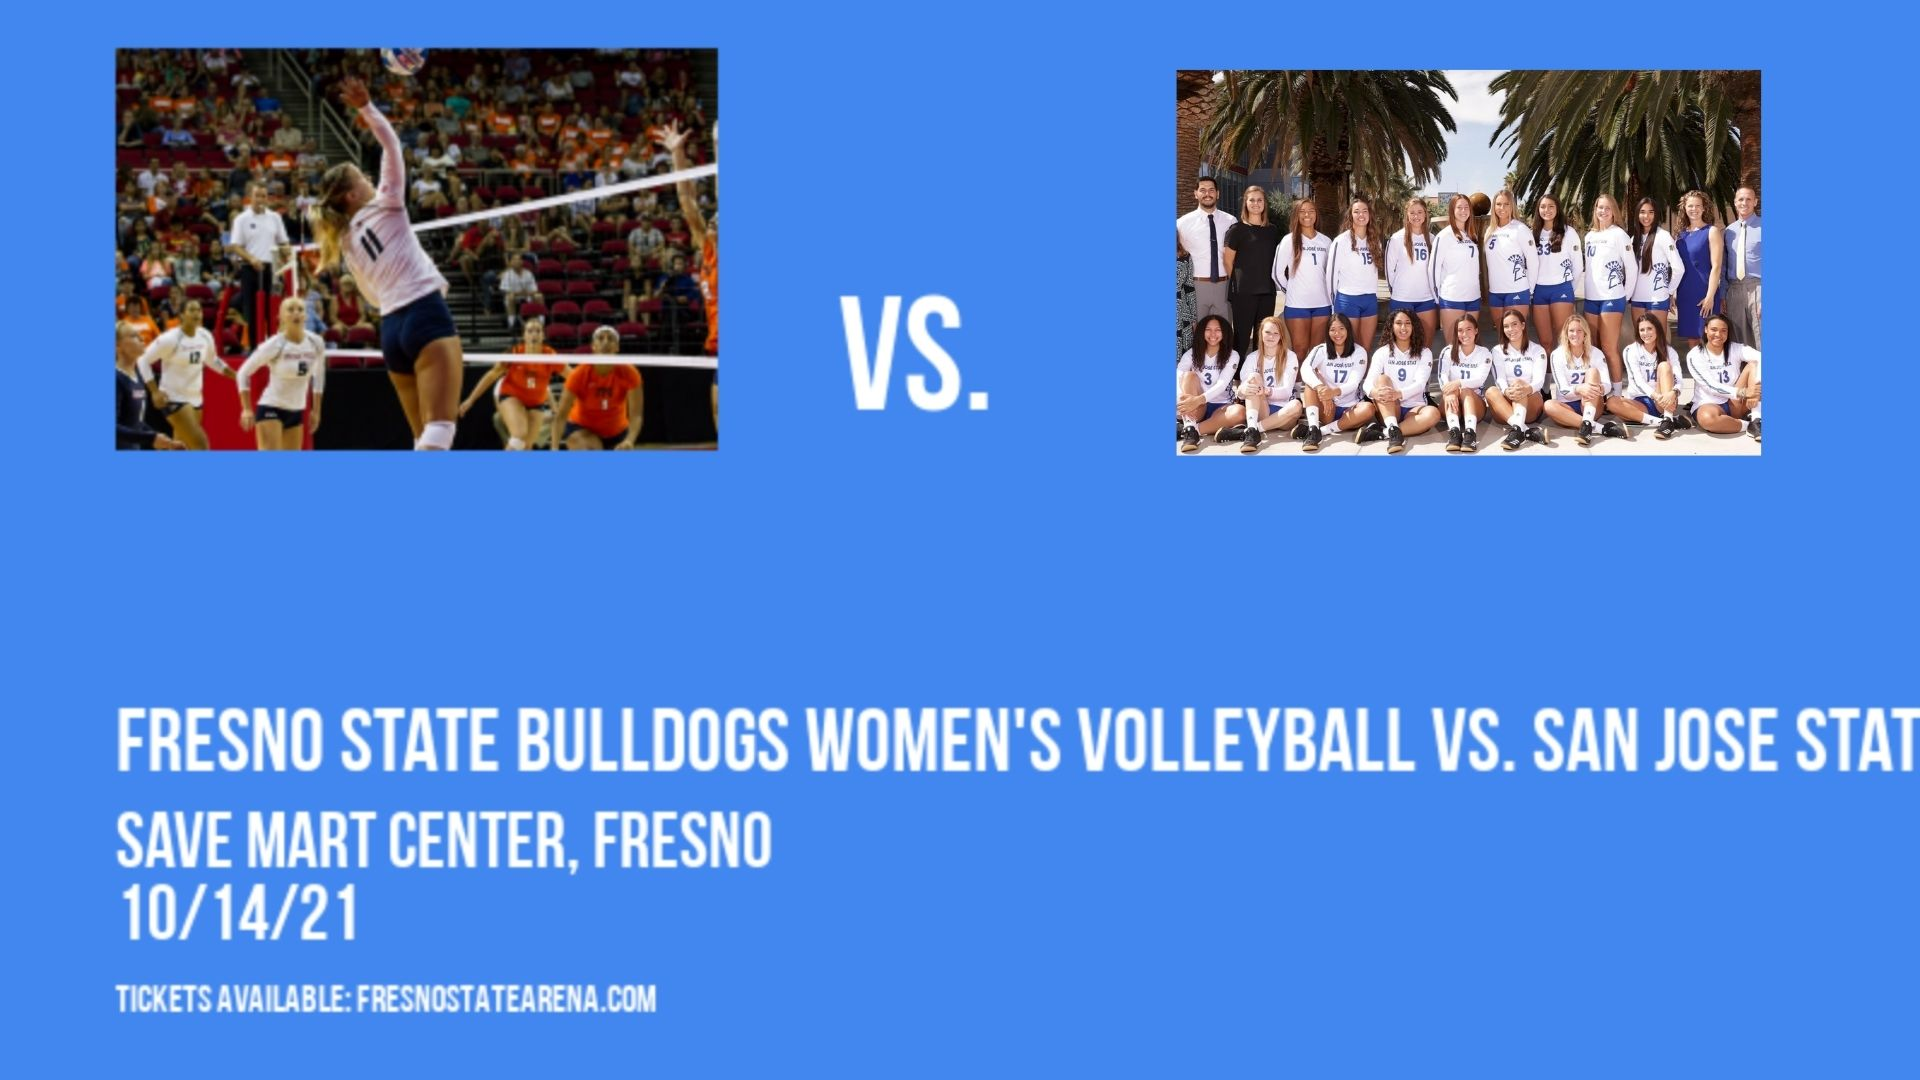 Fresno State Bulldogs Women's Volleyball vs. San Jose State Spartans at Save Mart Center